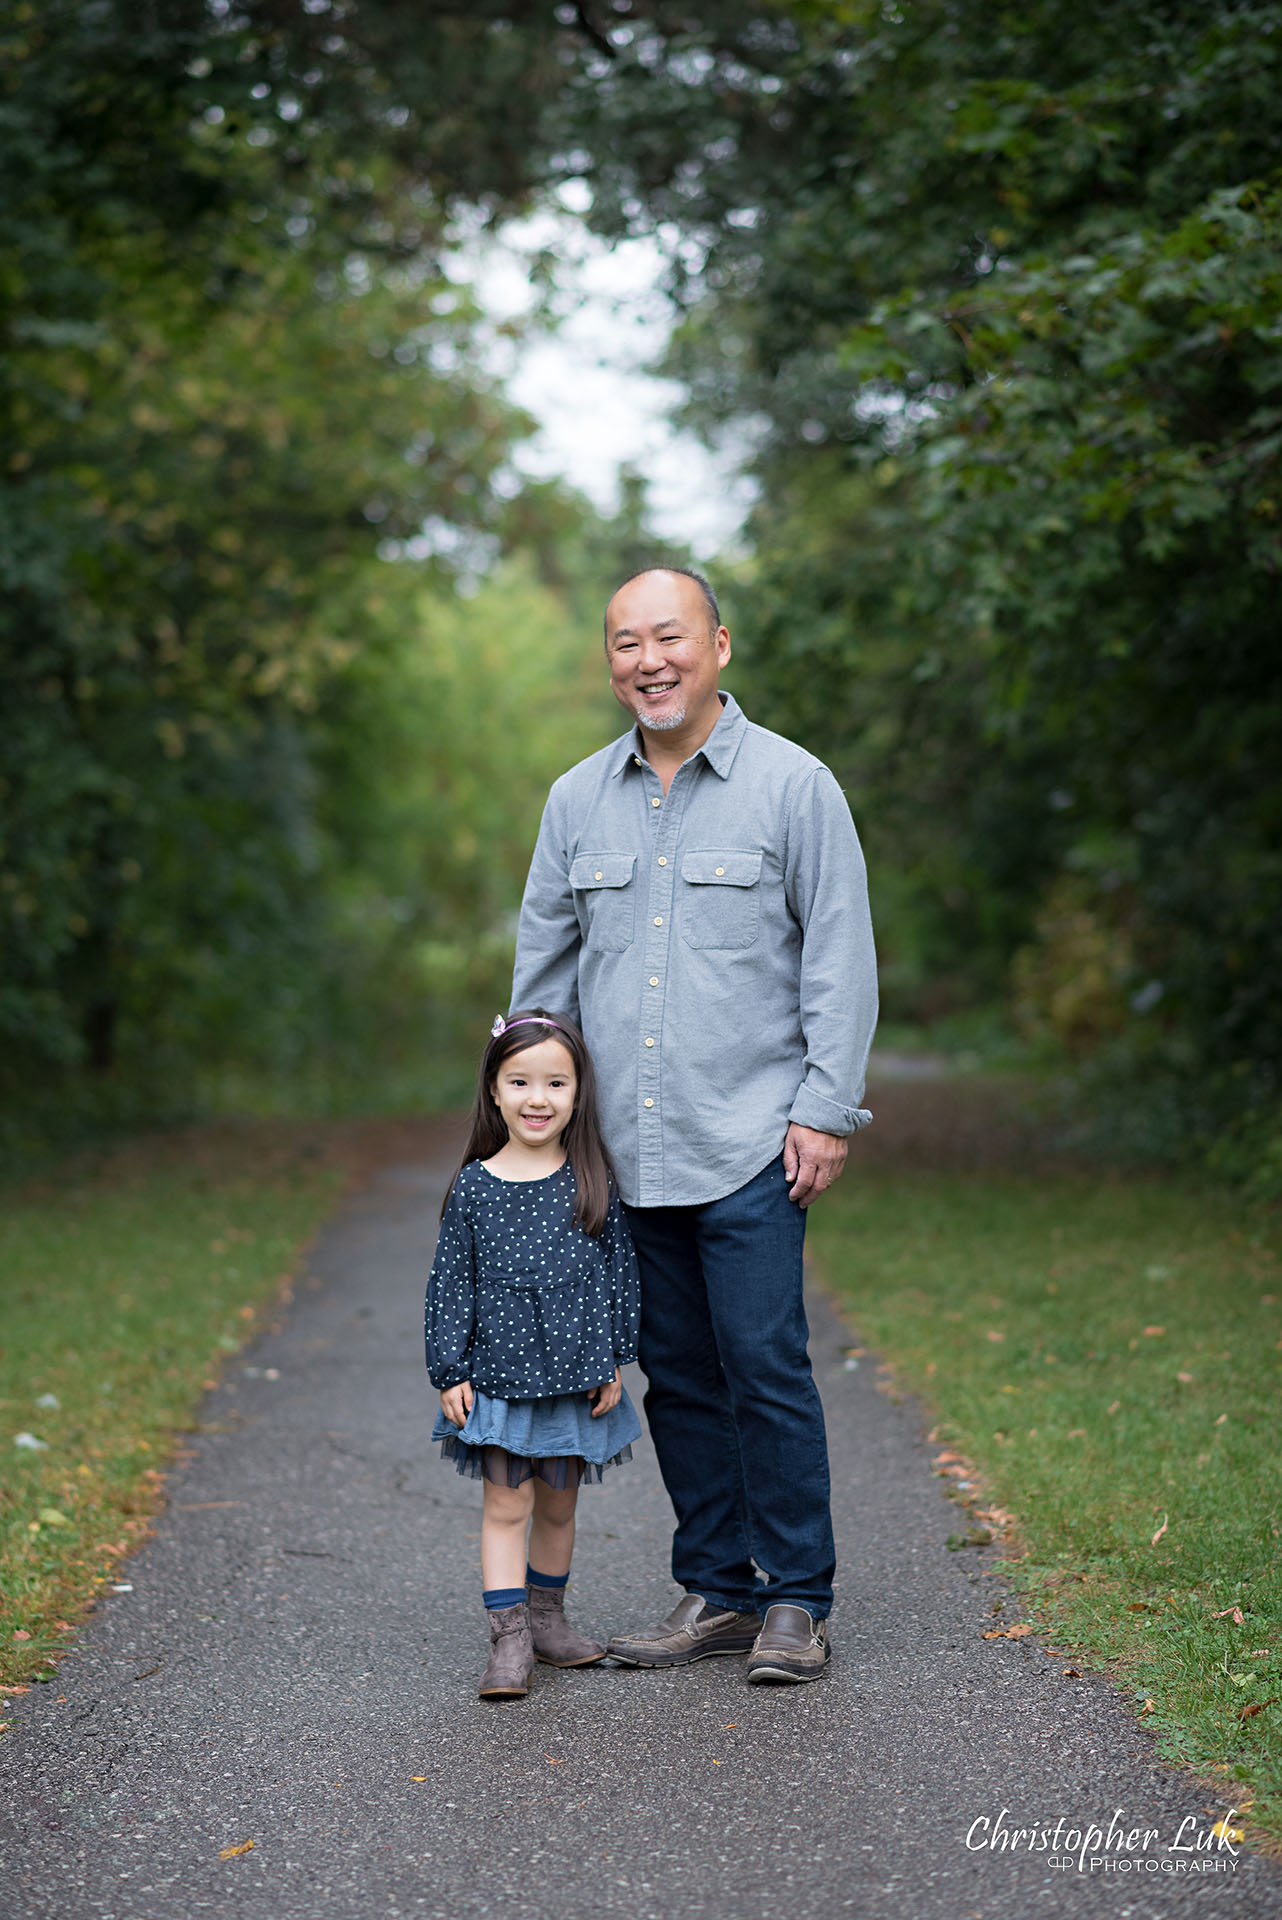 Christopher Luk Family Photographer Toronto Markham Candid Natural Photojournalistic Father Dad Fatherhood Daughter Smile